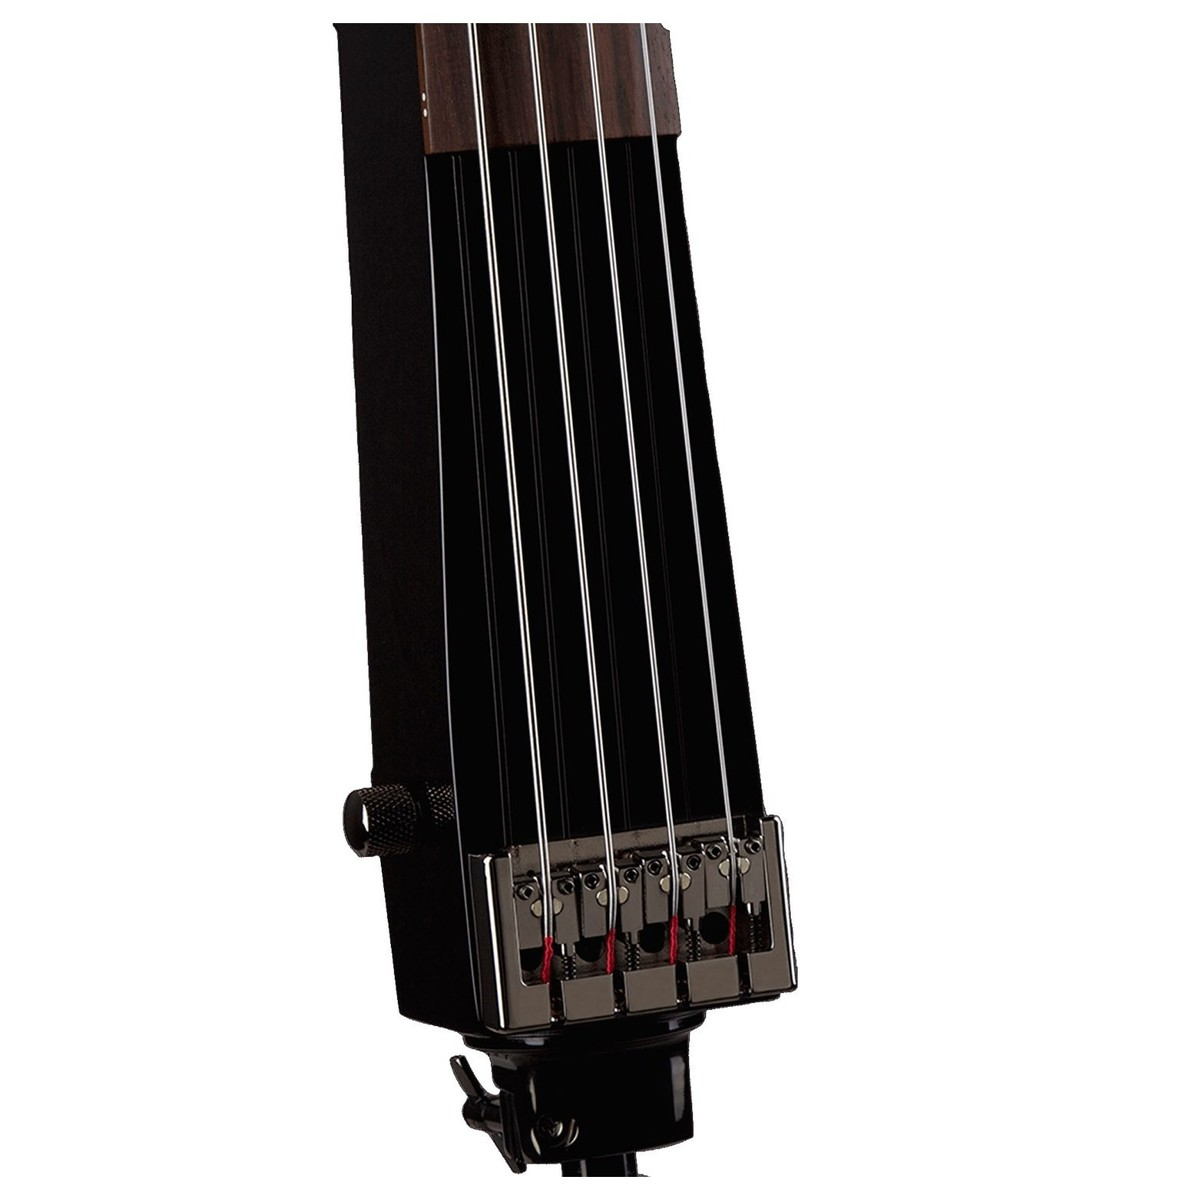 dean upright pace bass guitar classic black at. Black Bedroom Furniture Sets. Home Design Ideas